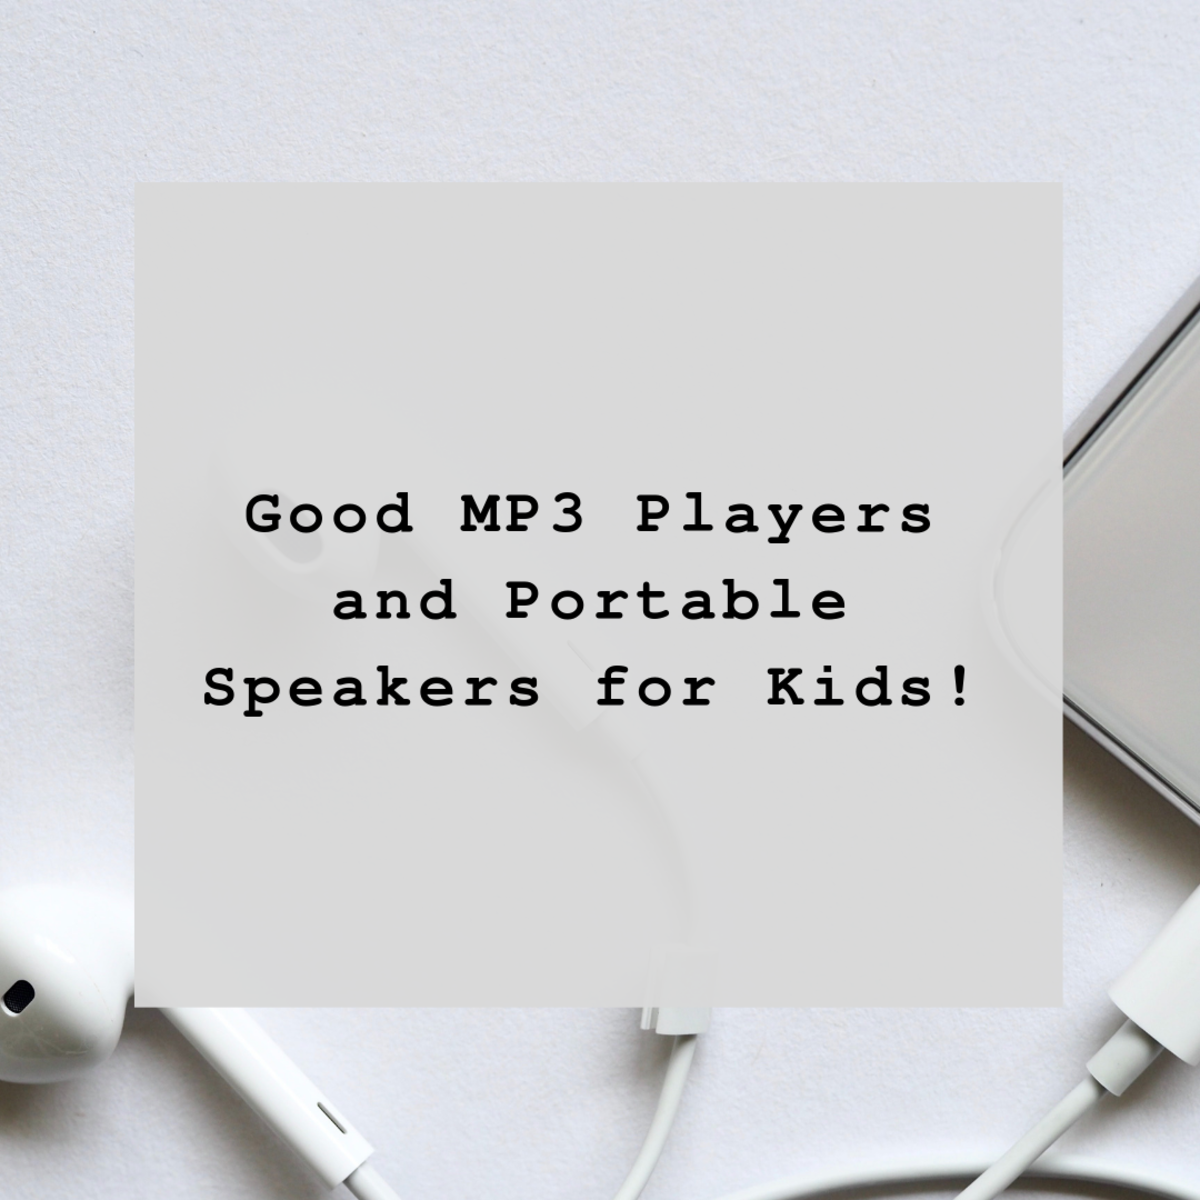 Good MP3 Players and Portable Speakers for Kids! | Spinditty